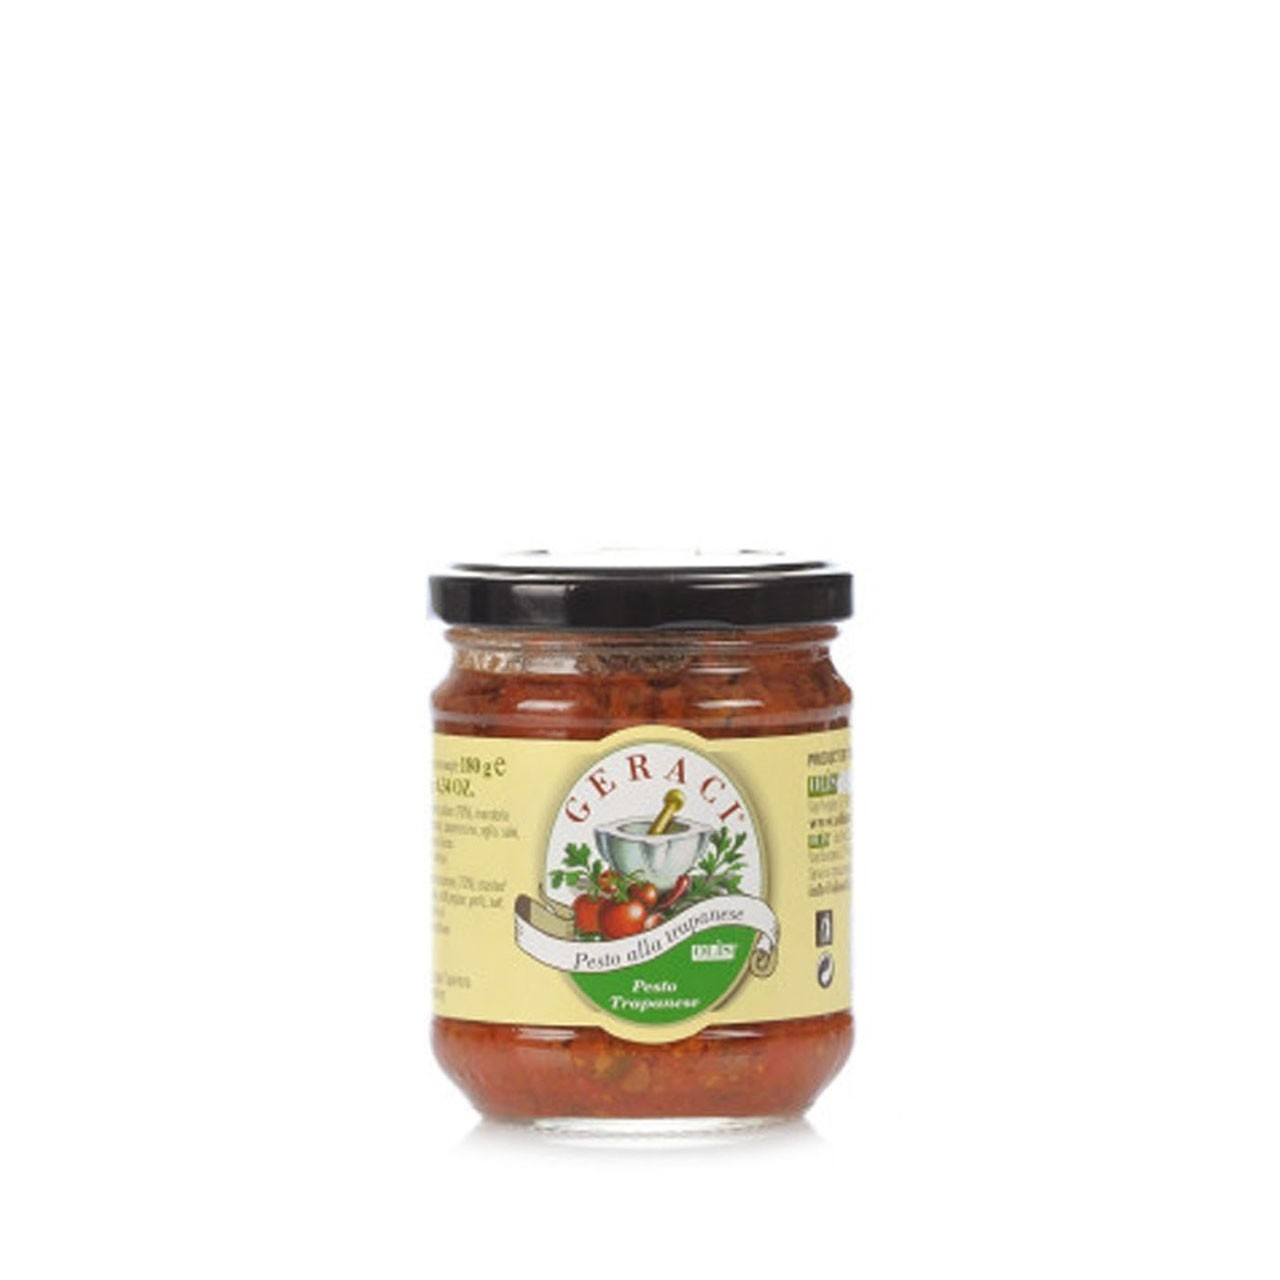 Pesto Trapanese 6.3oz